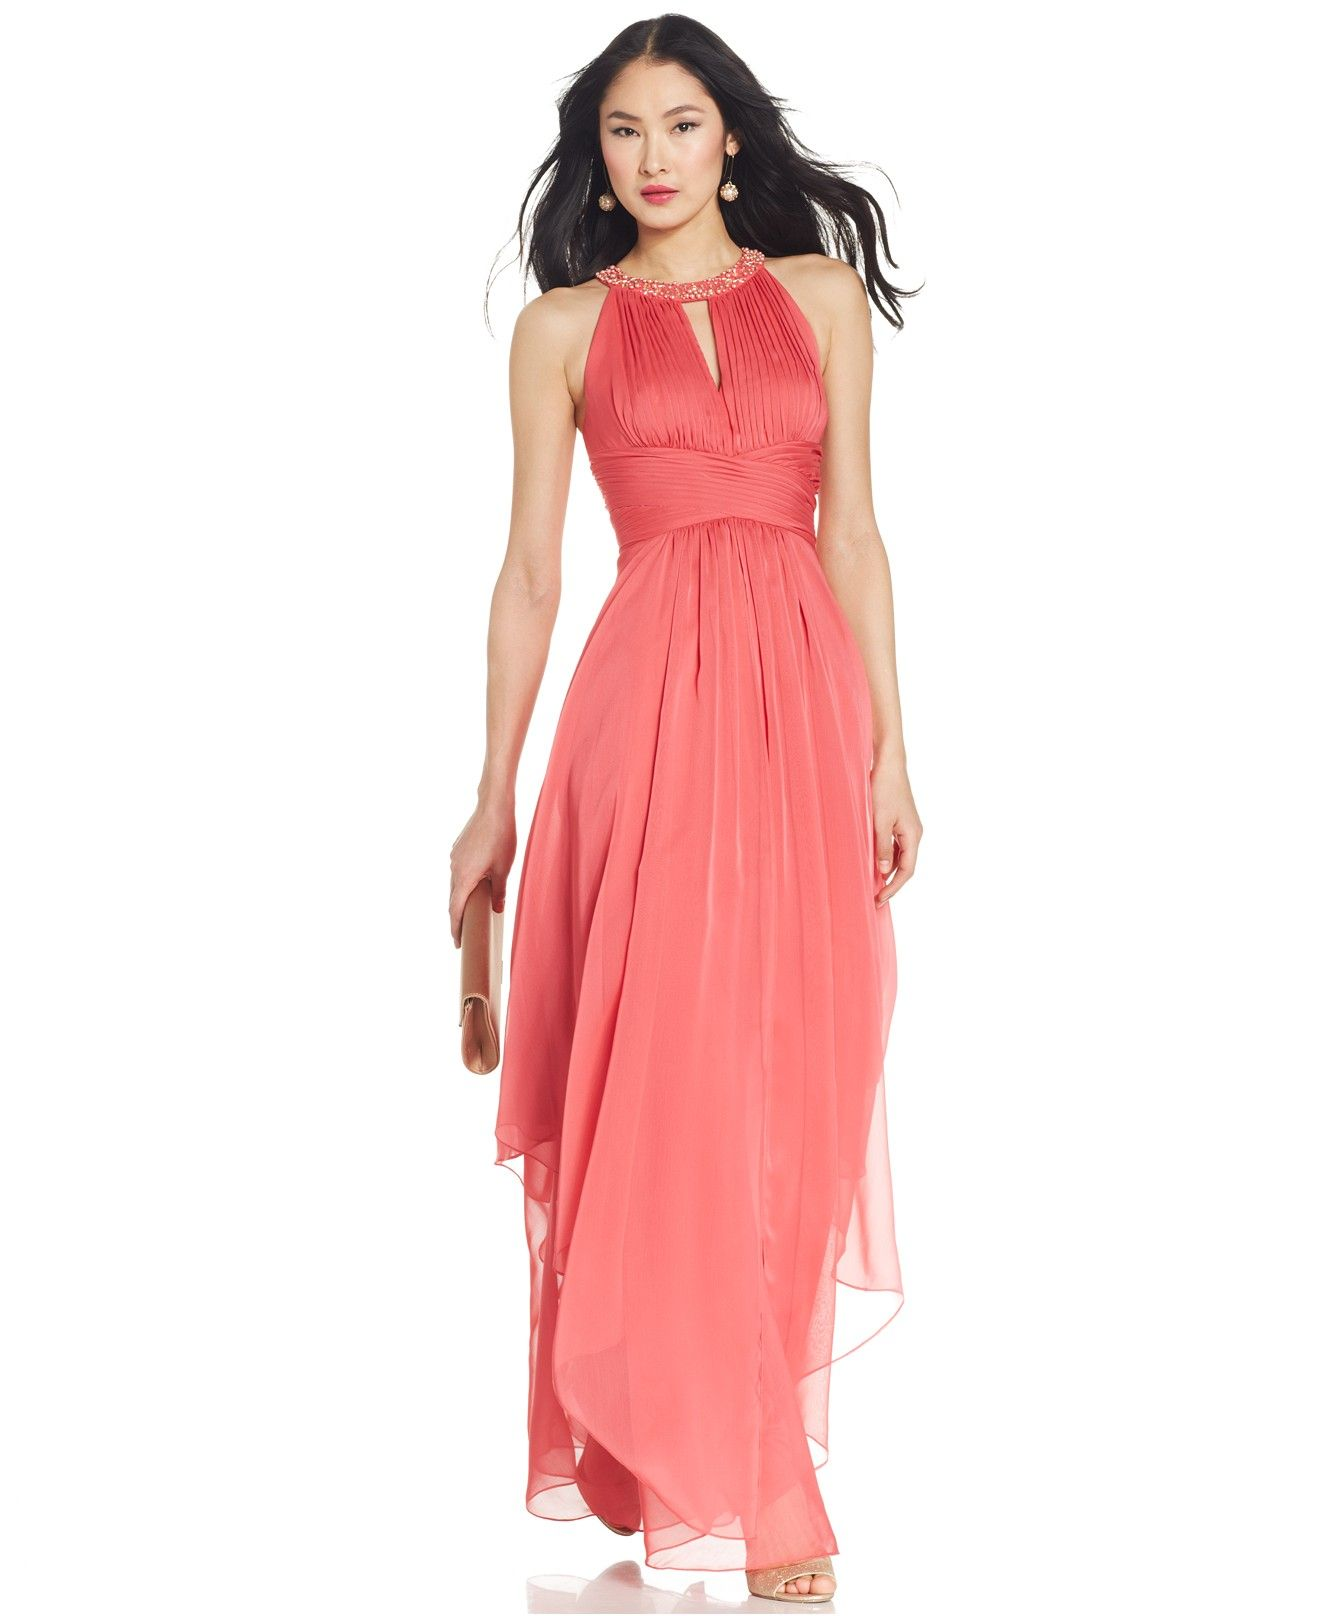 Macy's party dresses weddings  Adrianna Papell Embellished Pleated Chiffon Halter Gown  Dresses